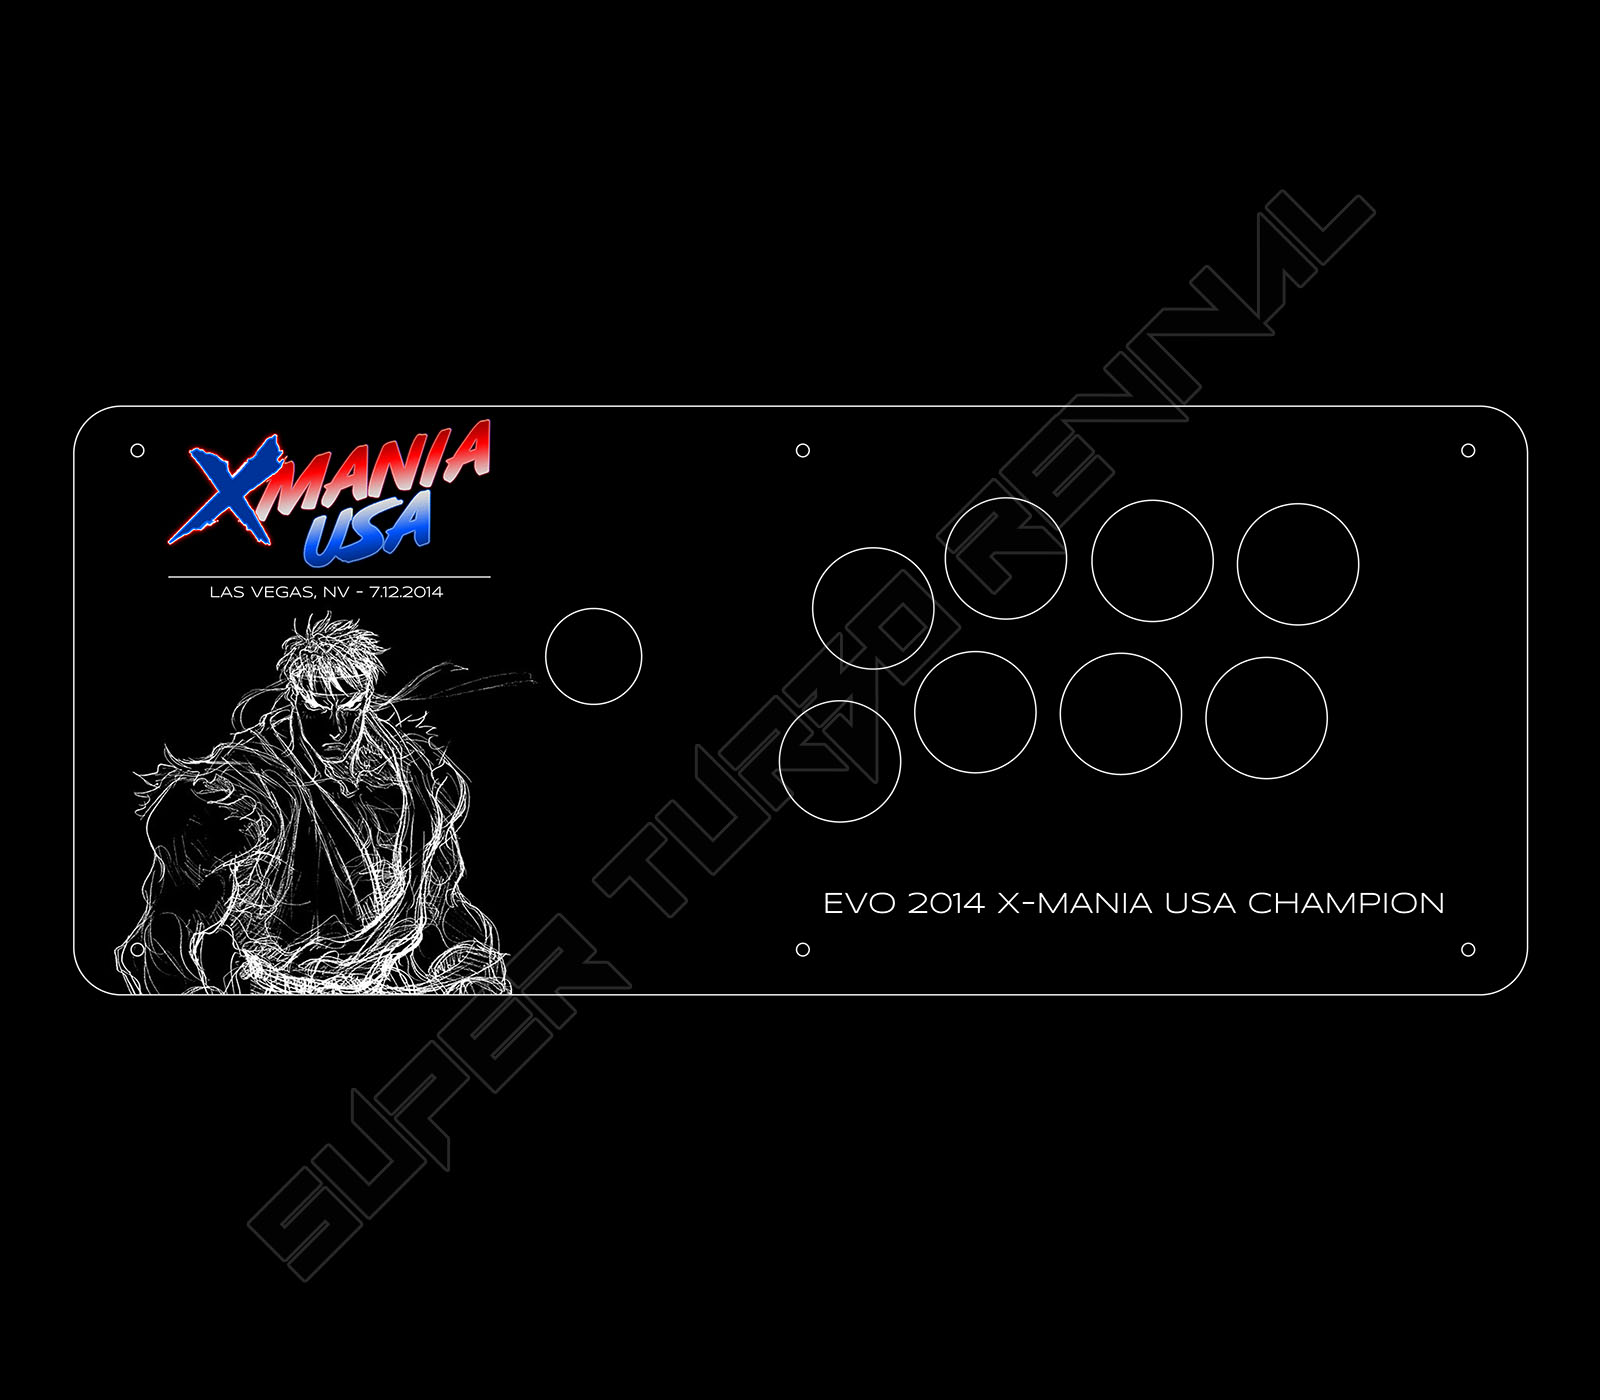 Art used for fightsticks that would be given to the winners of X-MANIA USA